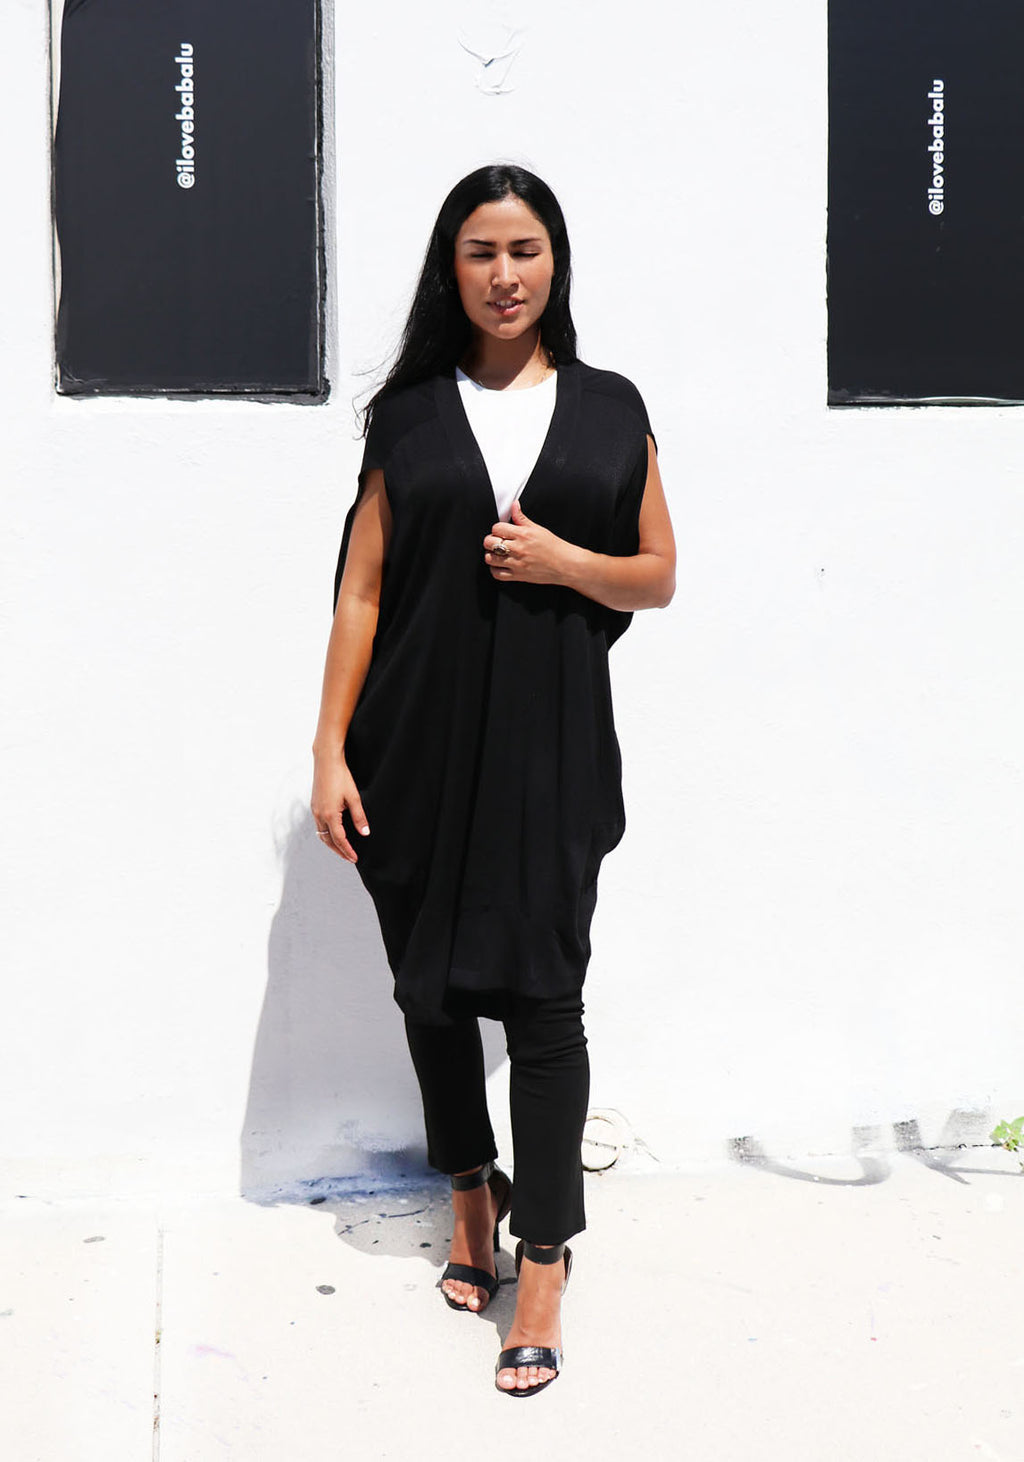 COVER UP VEST - KATANA FASHION BOUTIQUE